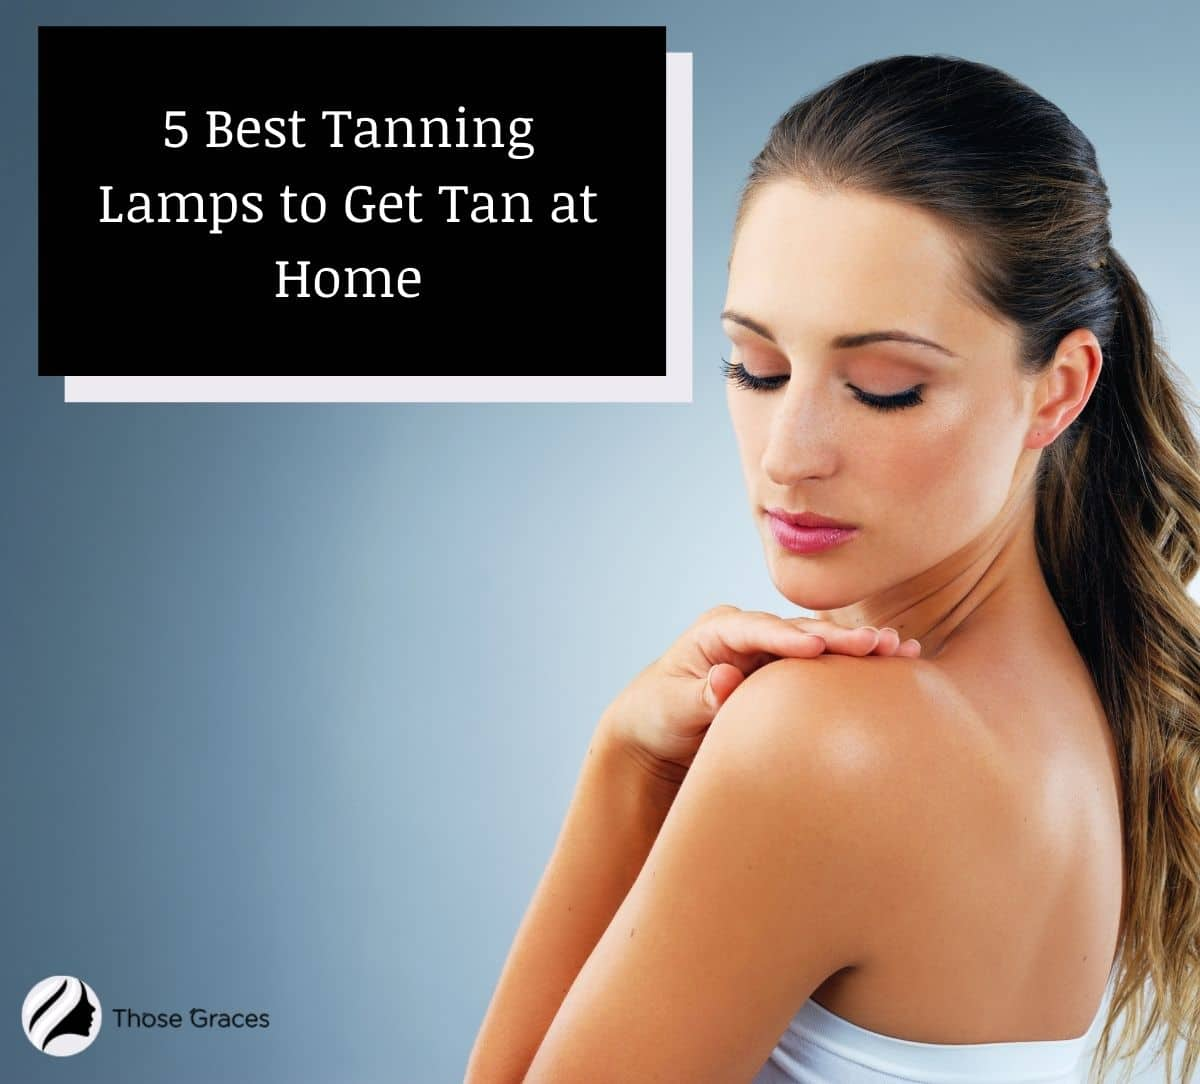 a lady who achieved a golden tan after using tanning lamps